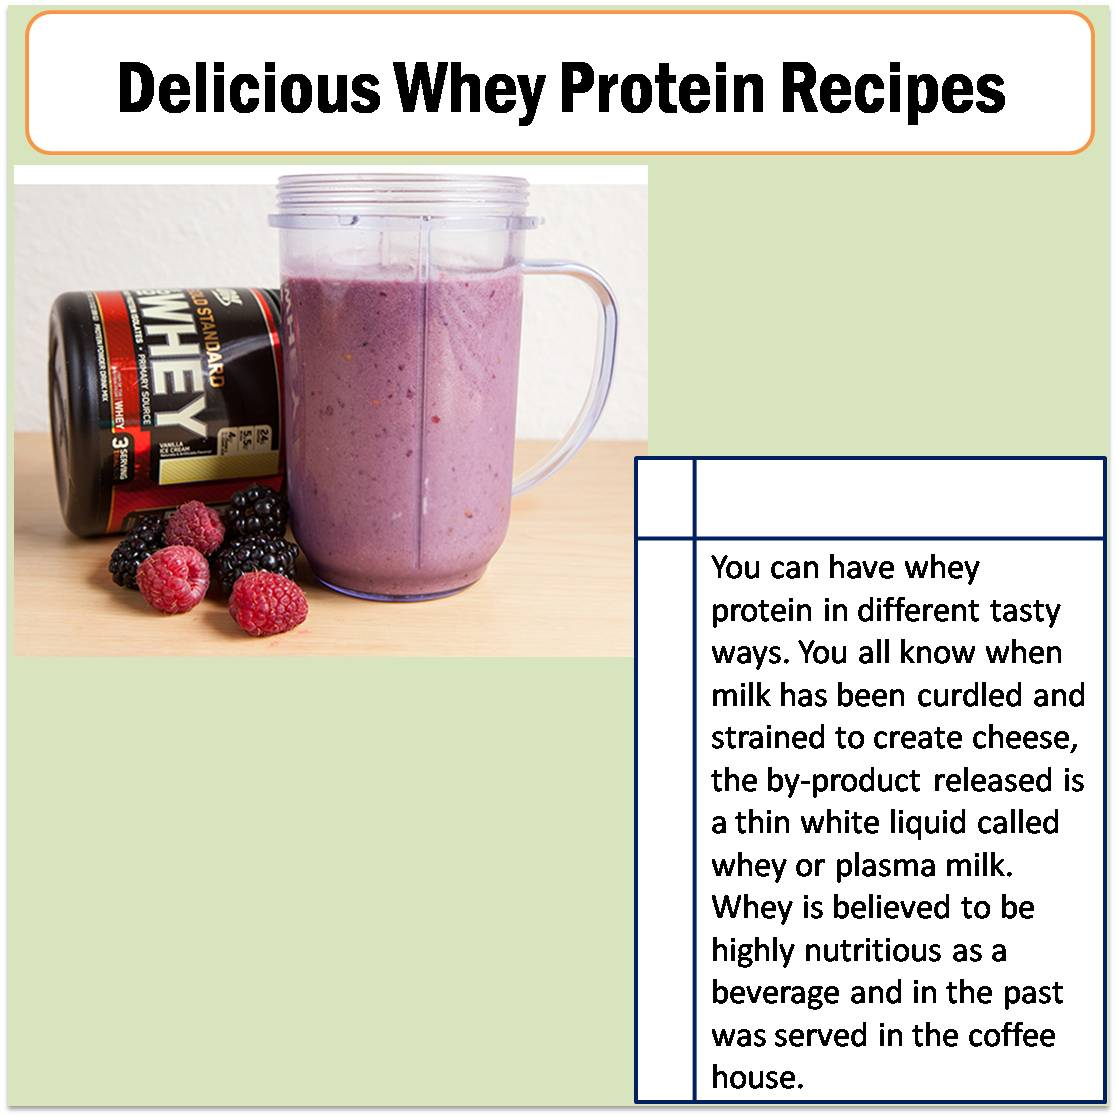 Delicious Whey Protein Recipes